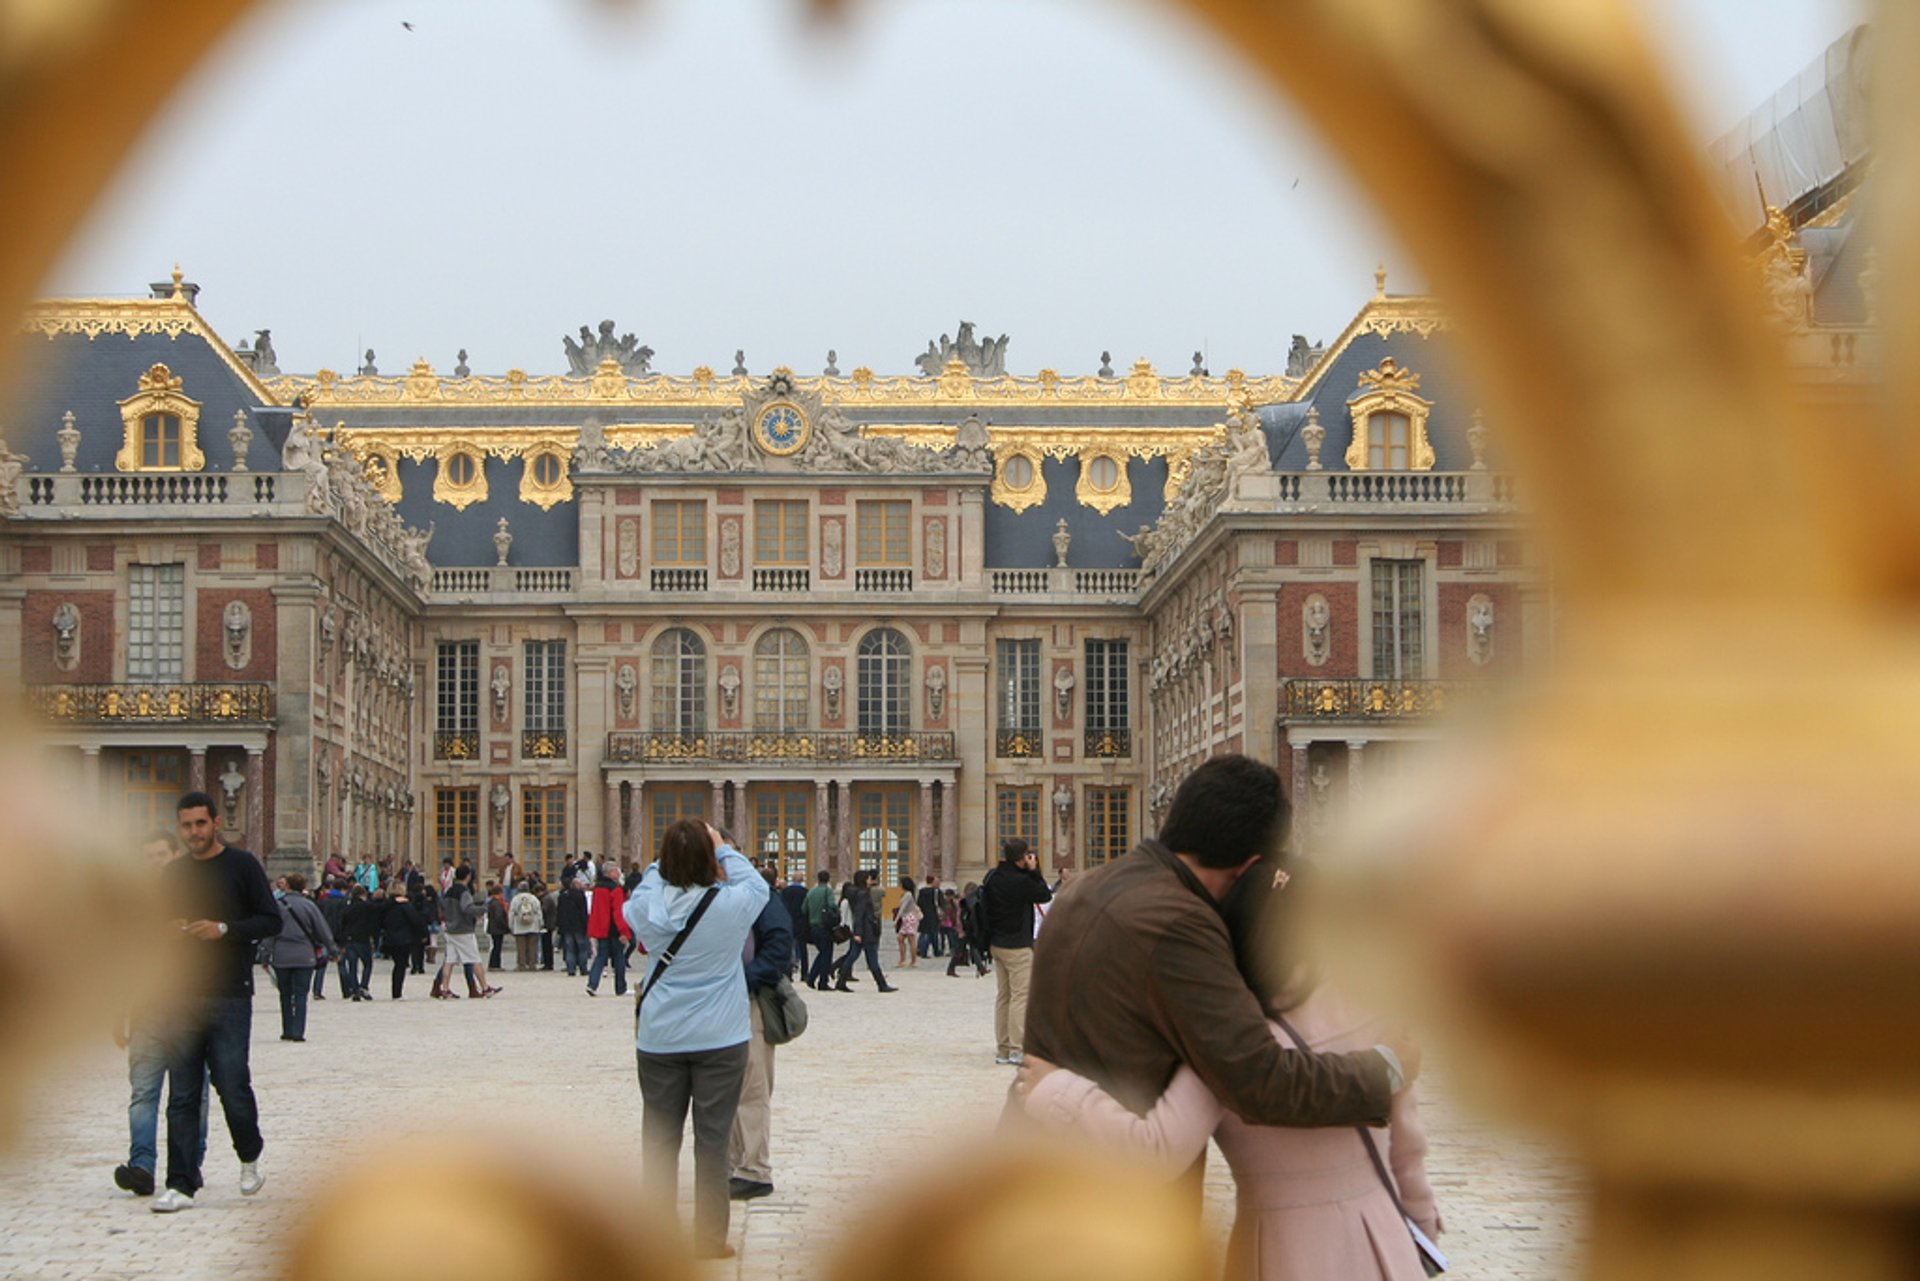 Palace of Versailles in France 2020 - Best Time